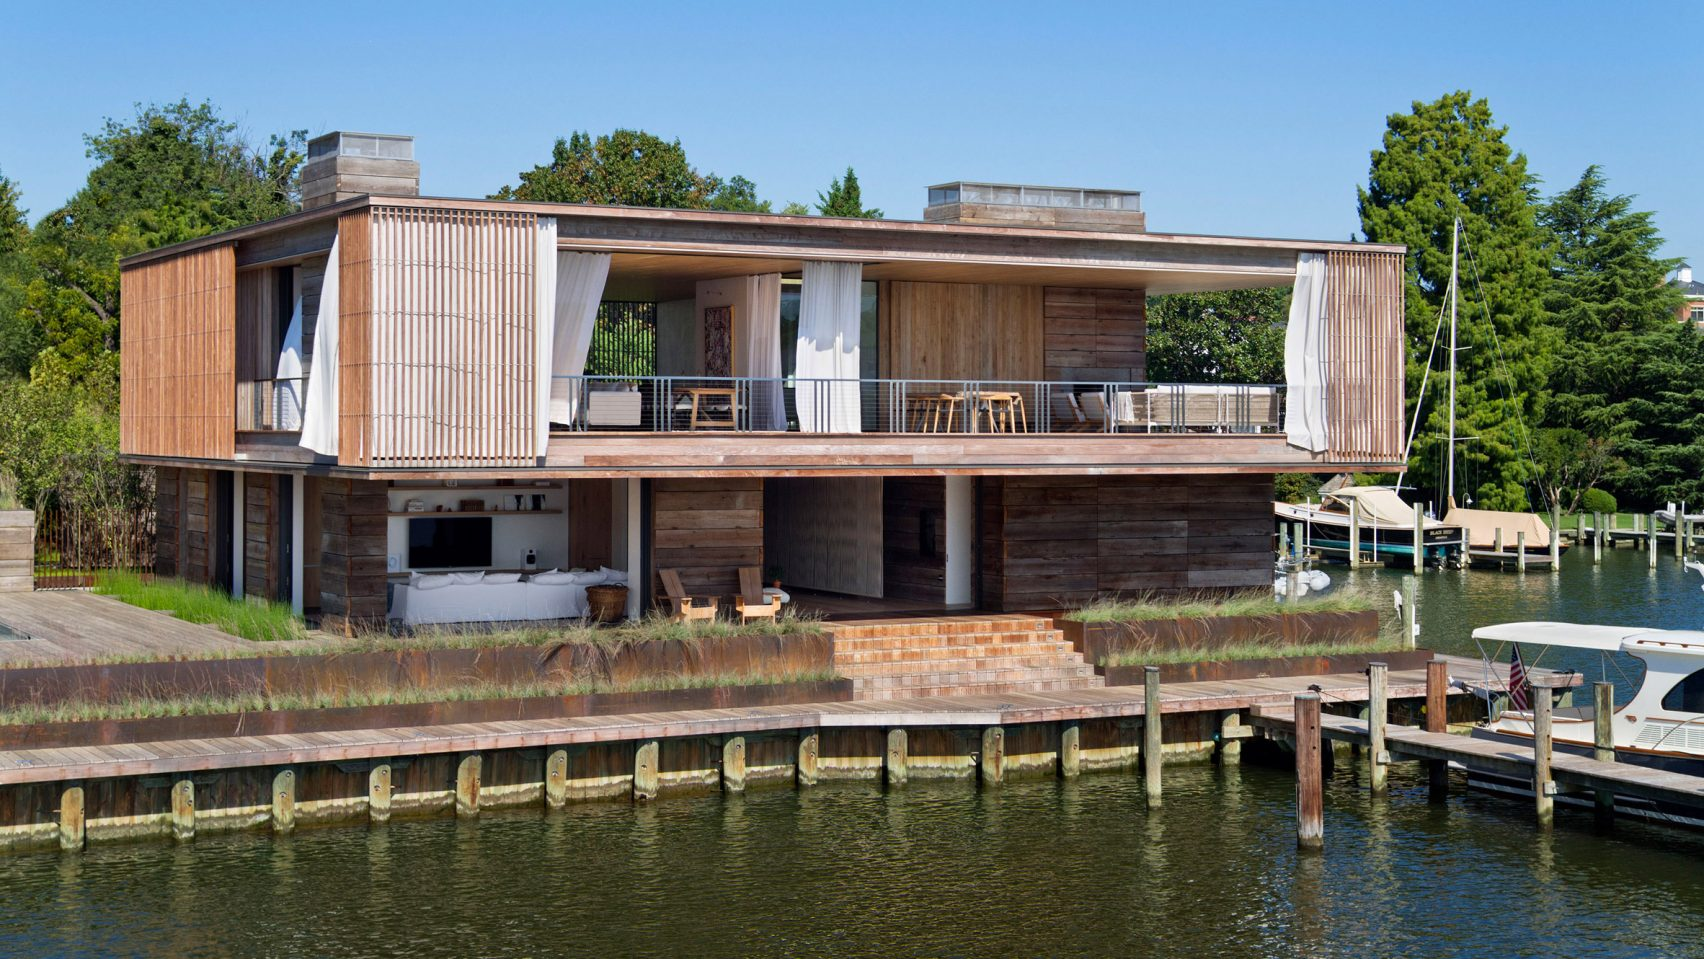 Bates Masi, wooden home, sailing family, Annapolis, waterfront, New York, Chesapeake Bay, Acton Cove, Maryland, capital city, Us Naval Academy, dock, boat, residence, boating, sliding glass door, curtain, indoor, outdoor, privacy, weather, living room, cantilevered decks, balcony, Acton Cove, modern, nautical aesthetic, white walls, cabinet, furniture, kitchen, couch, six PP503 chair, Hans J Wegner, swimming pool, dock, pool, bedroom, en-suite bathroom, Acton House, garage, studio, garden, Virginia-based Gregg Bleam